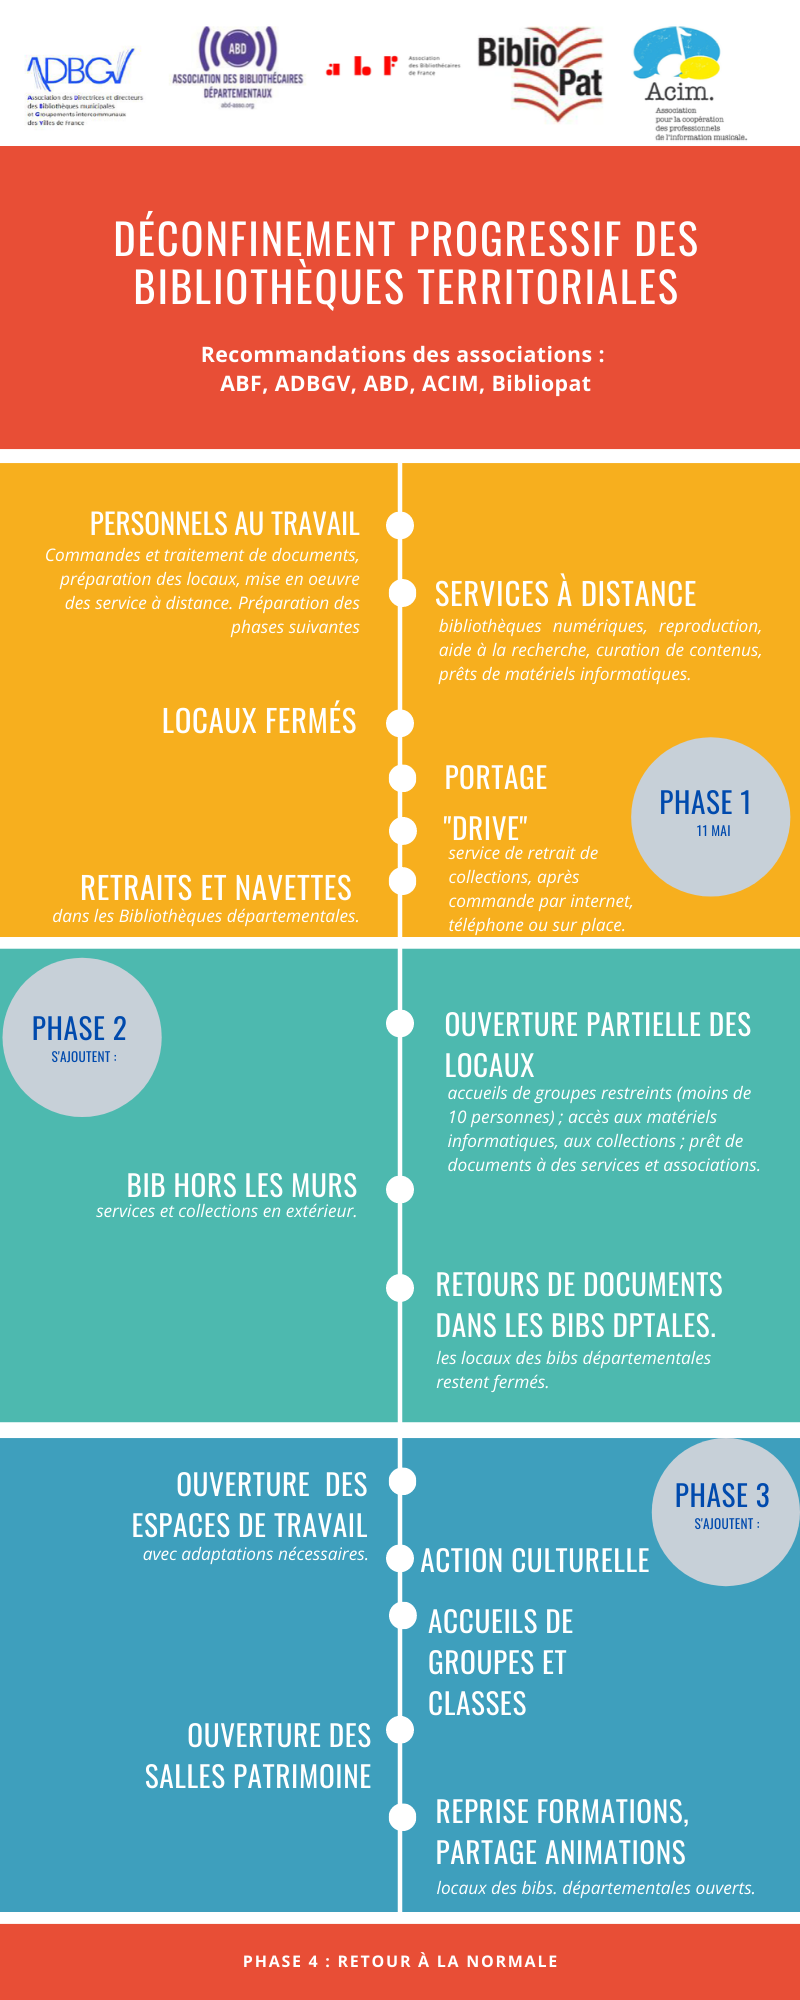 infographie phases deconfinement bibliotheque2